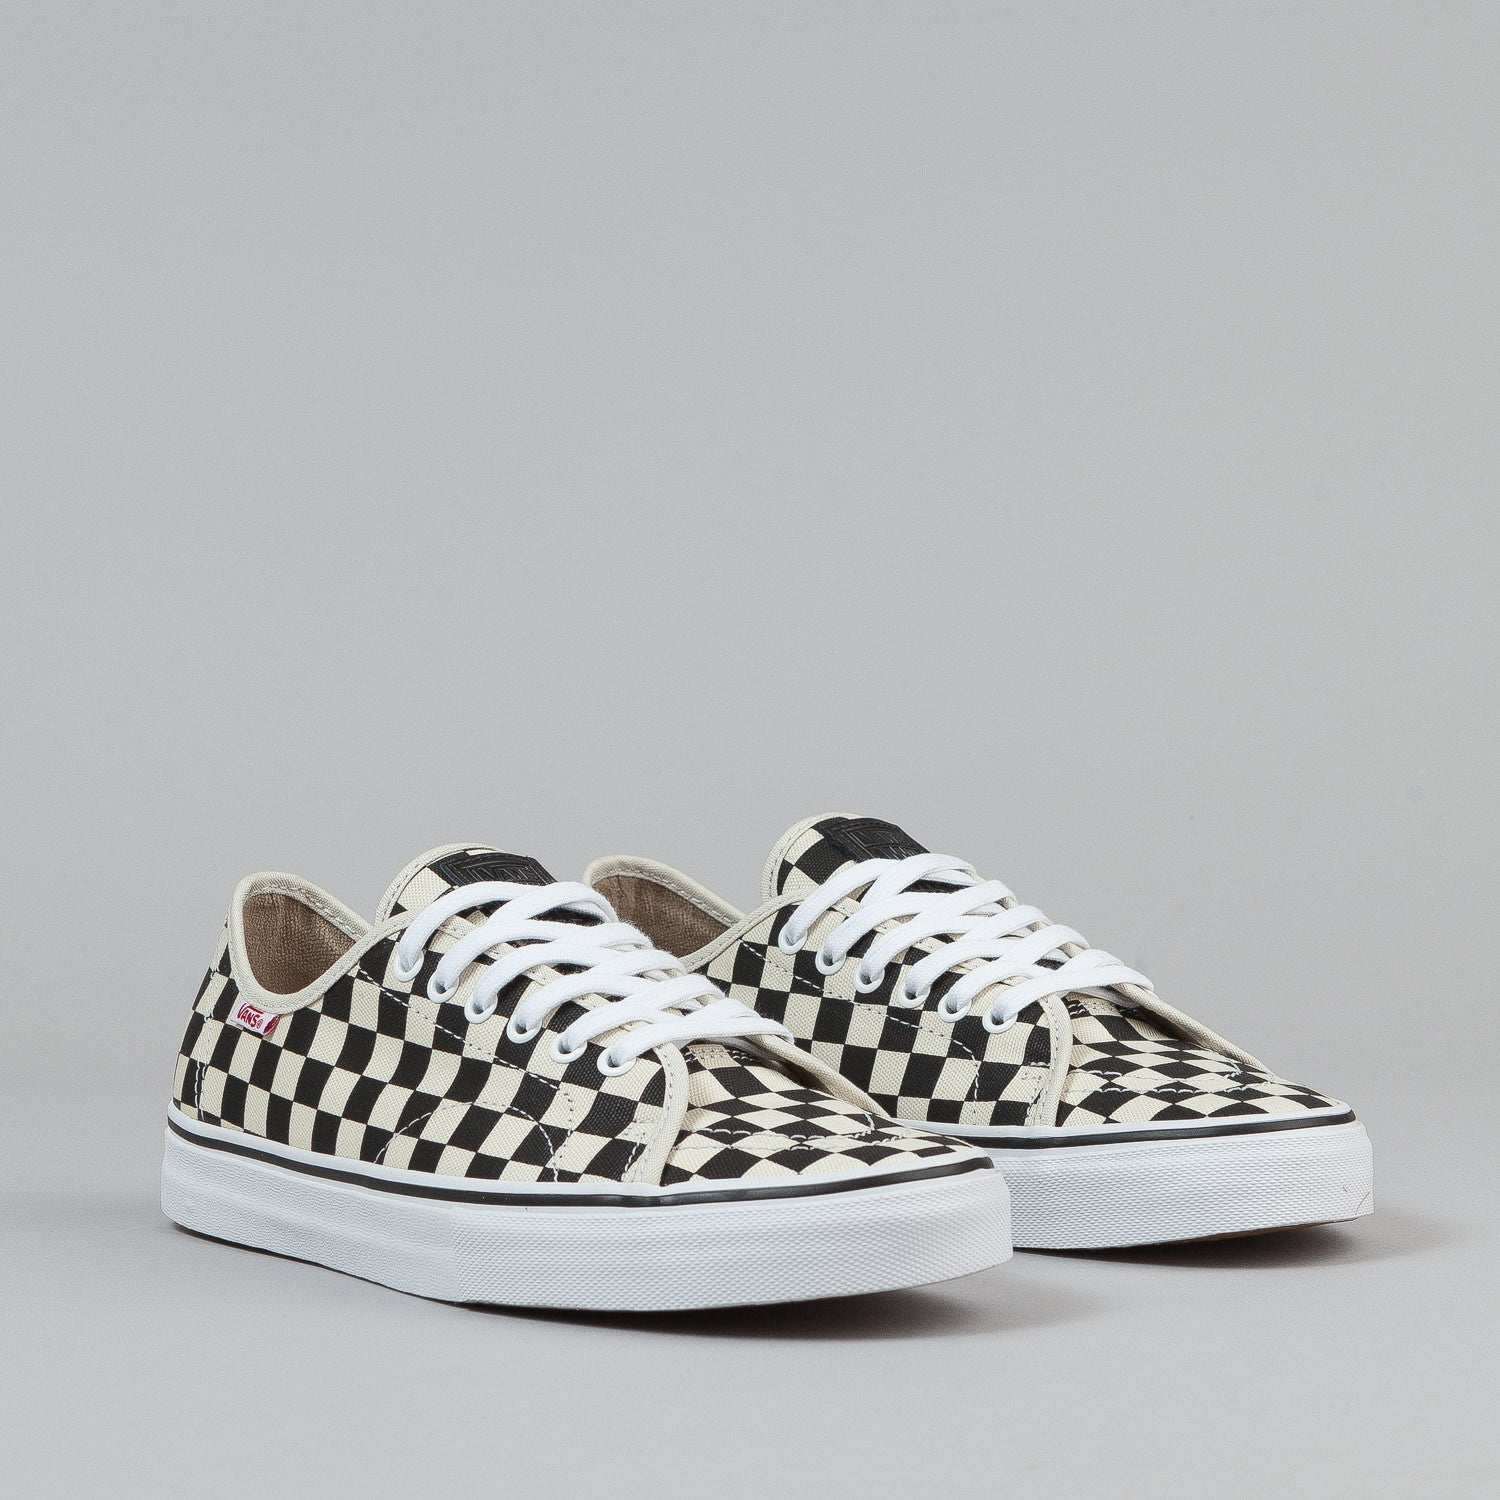 Vans AV Classic Shoes - (Checkers) Black / White